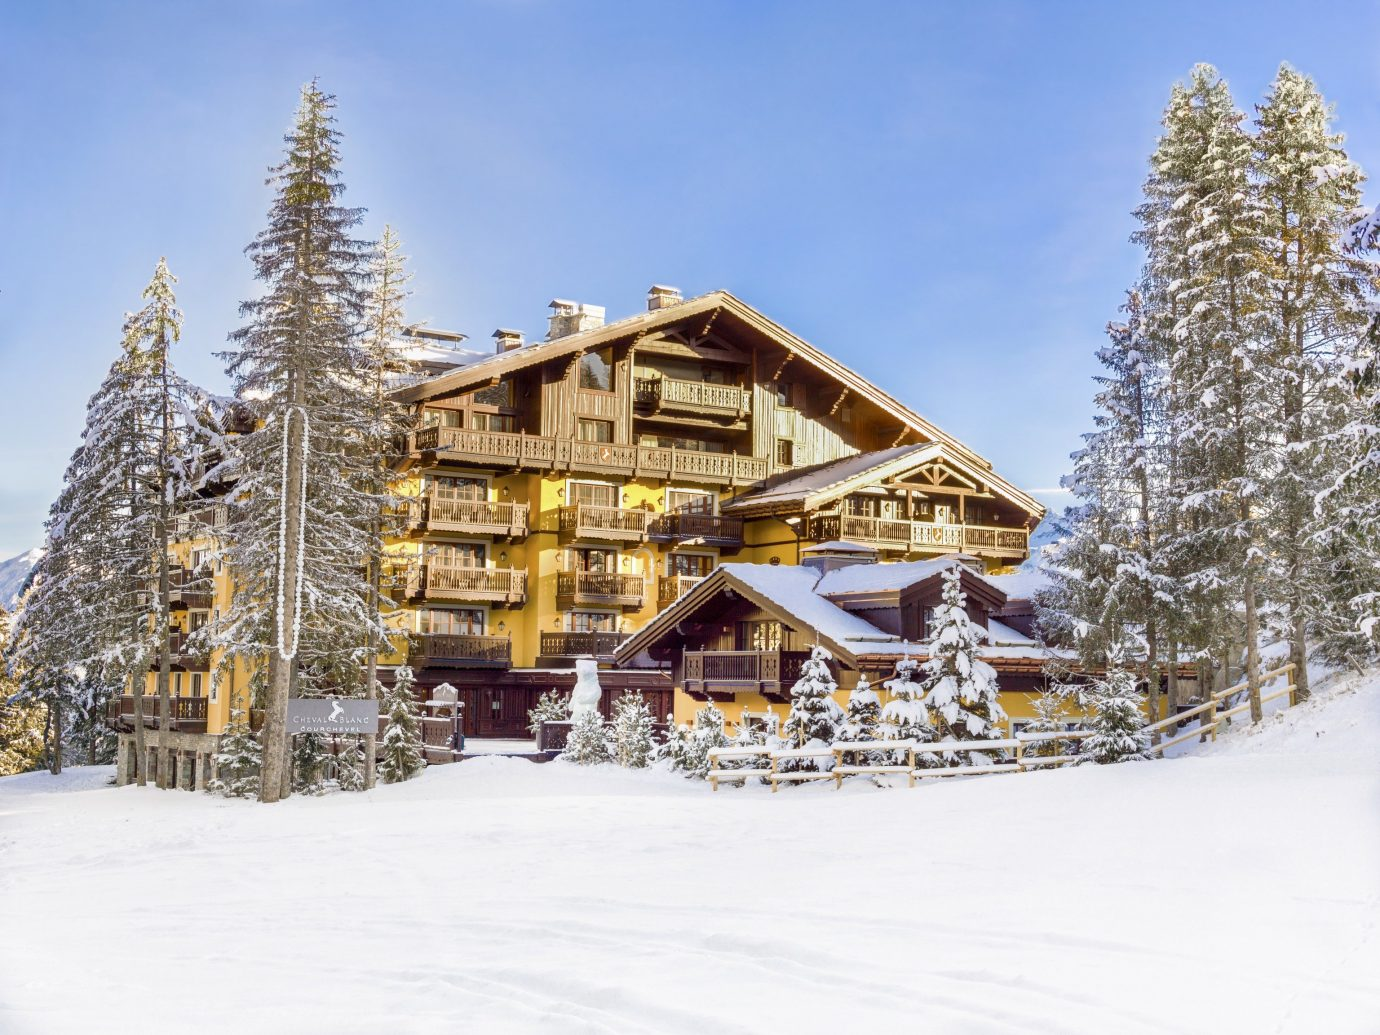 Hotels Luxury Travel Mountains + Skiing outdoor snow sky tree Winter piste geological phenomenon Resort season log cabin ride